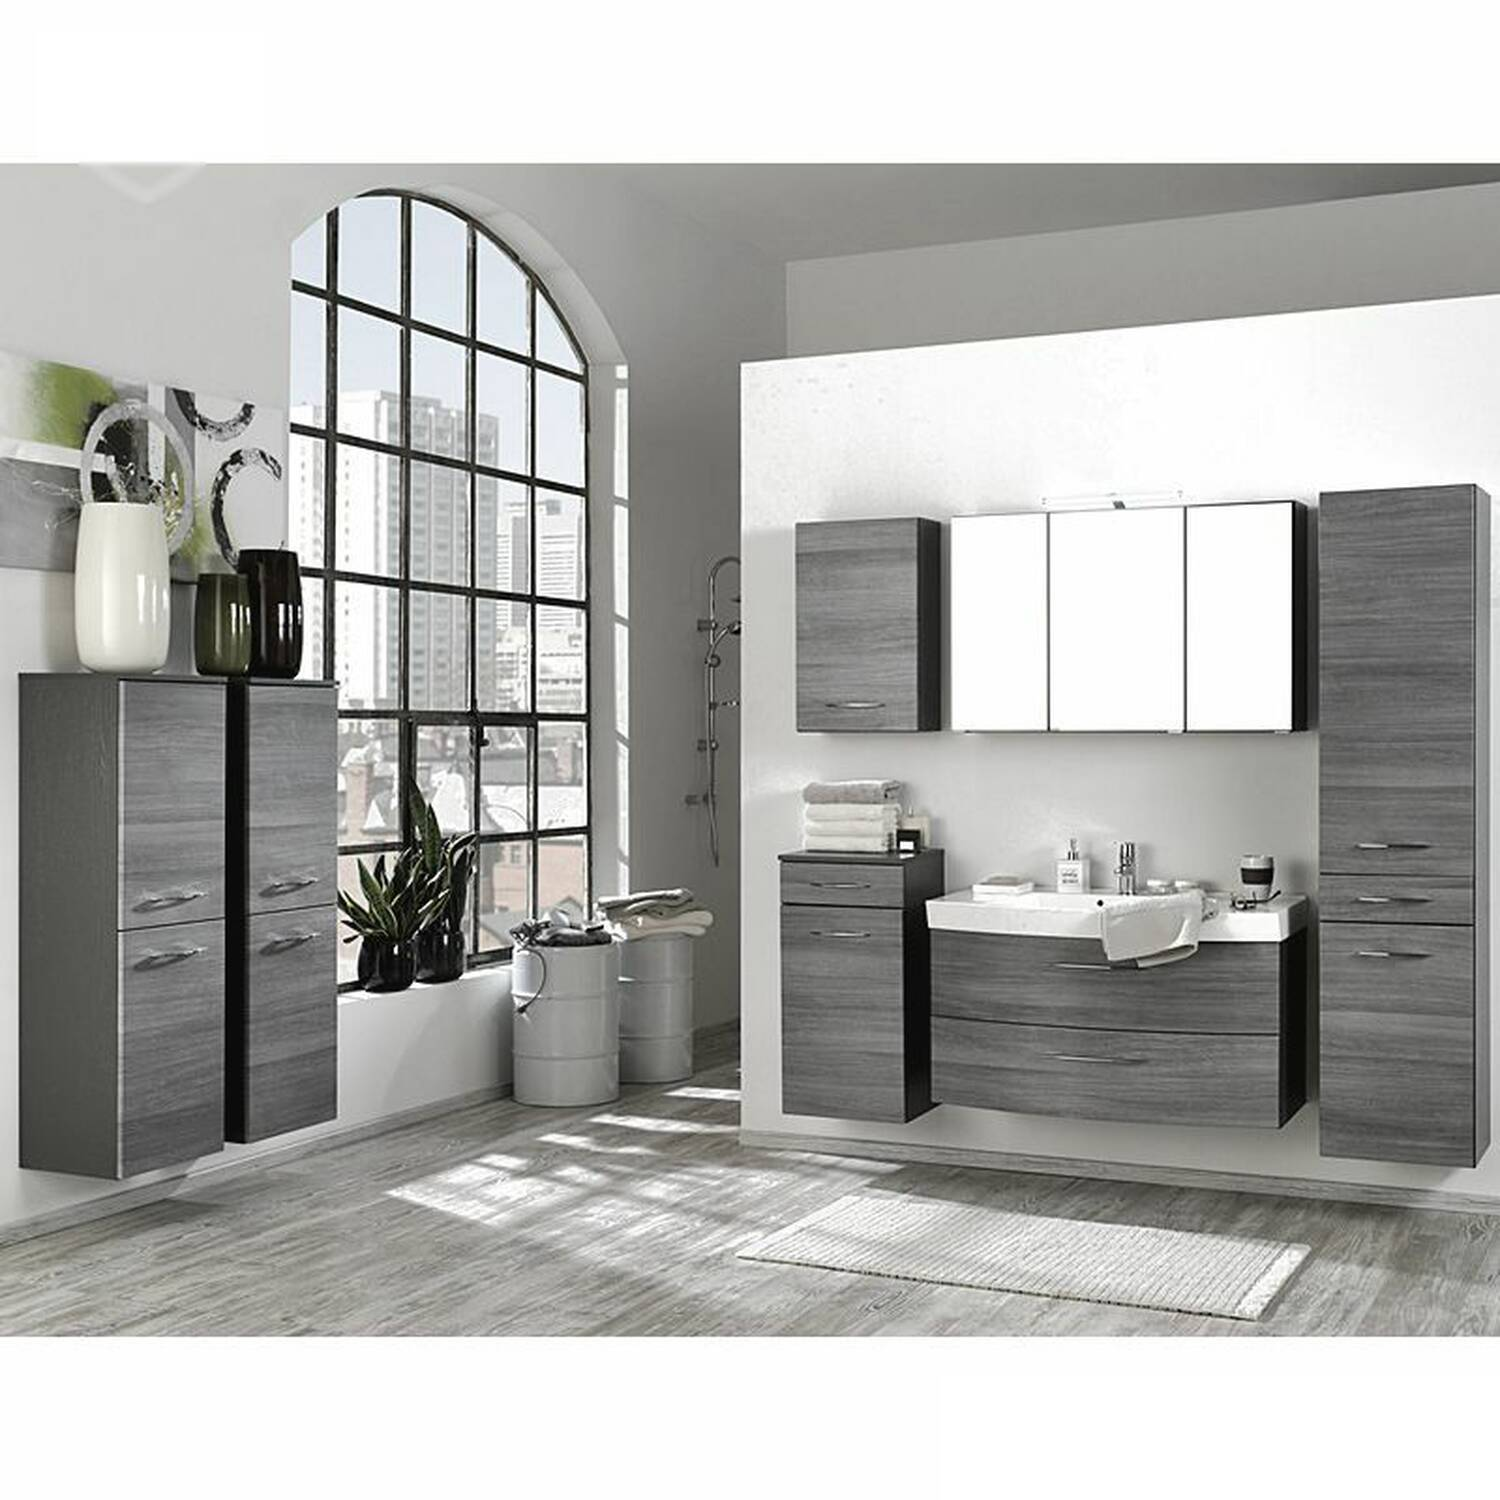 badm bel set florido 03 eiche rauchsilber graph. Black Bedroom Furniture Sets. Home Design Ideas